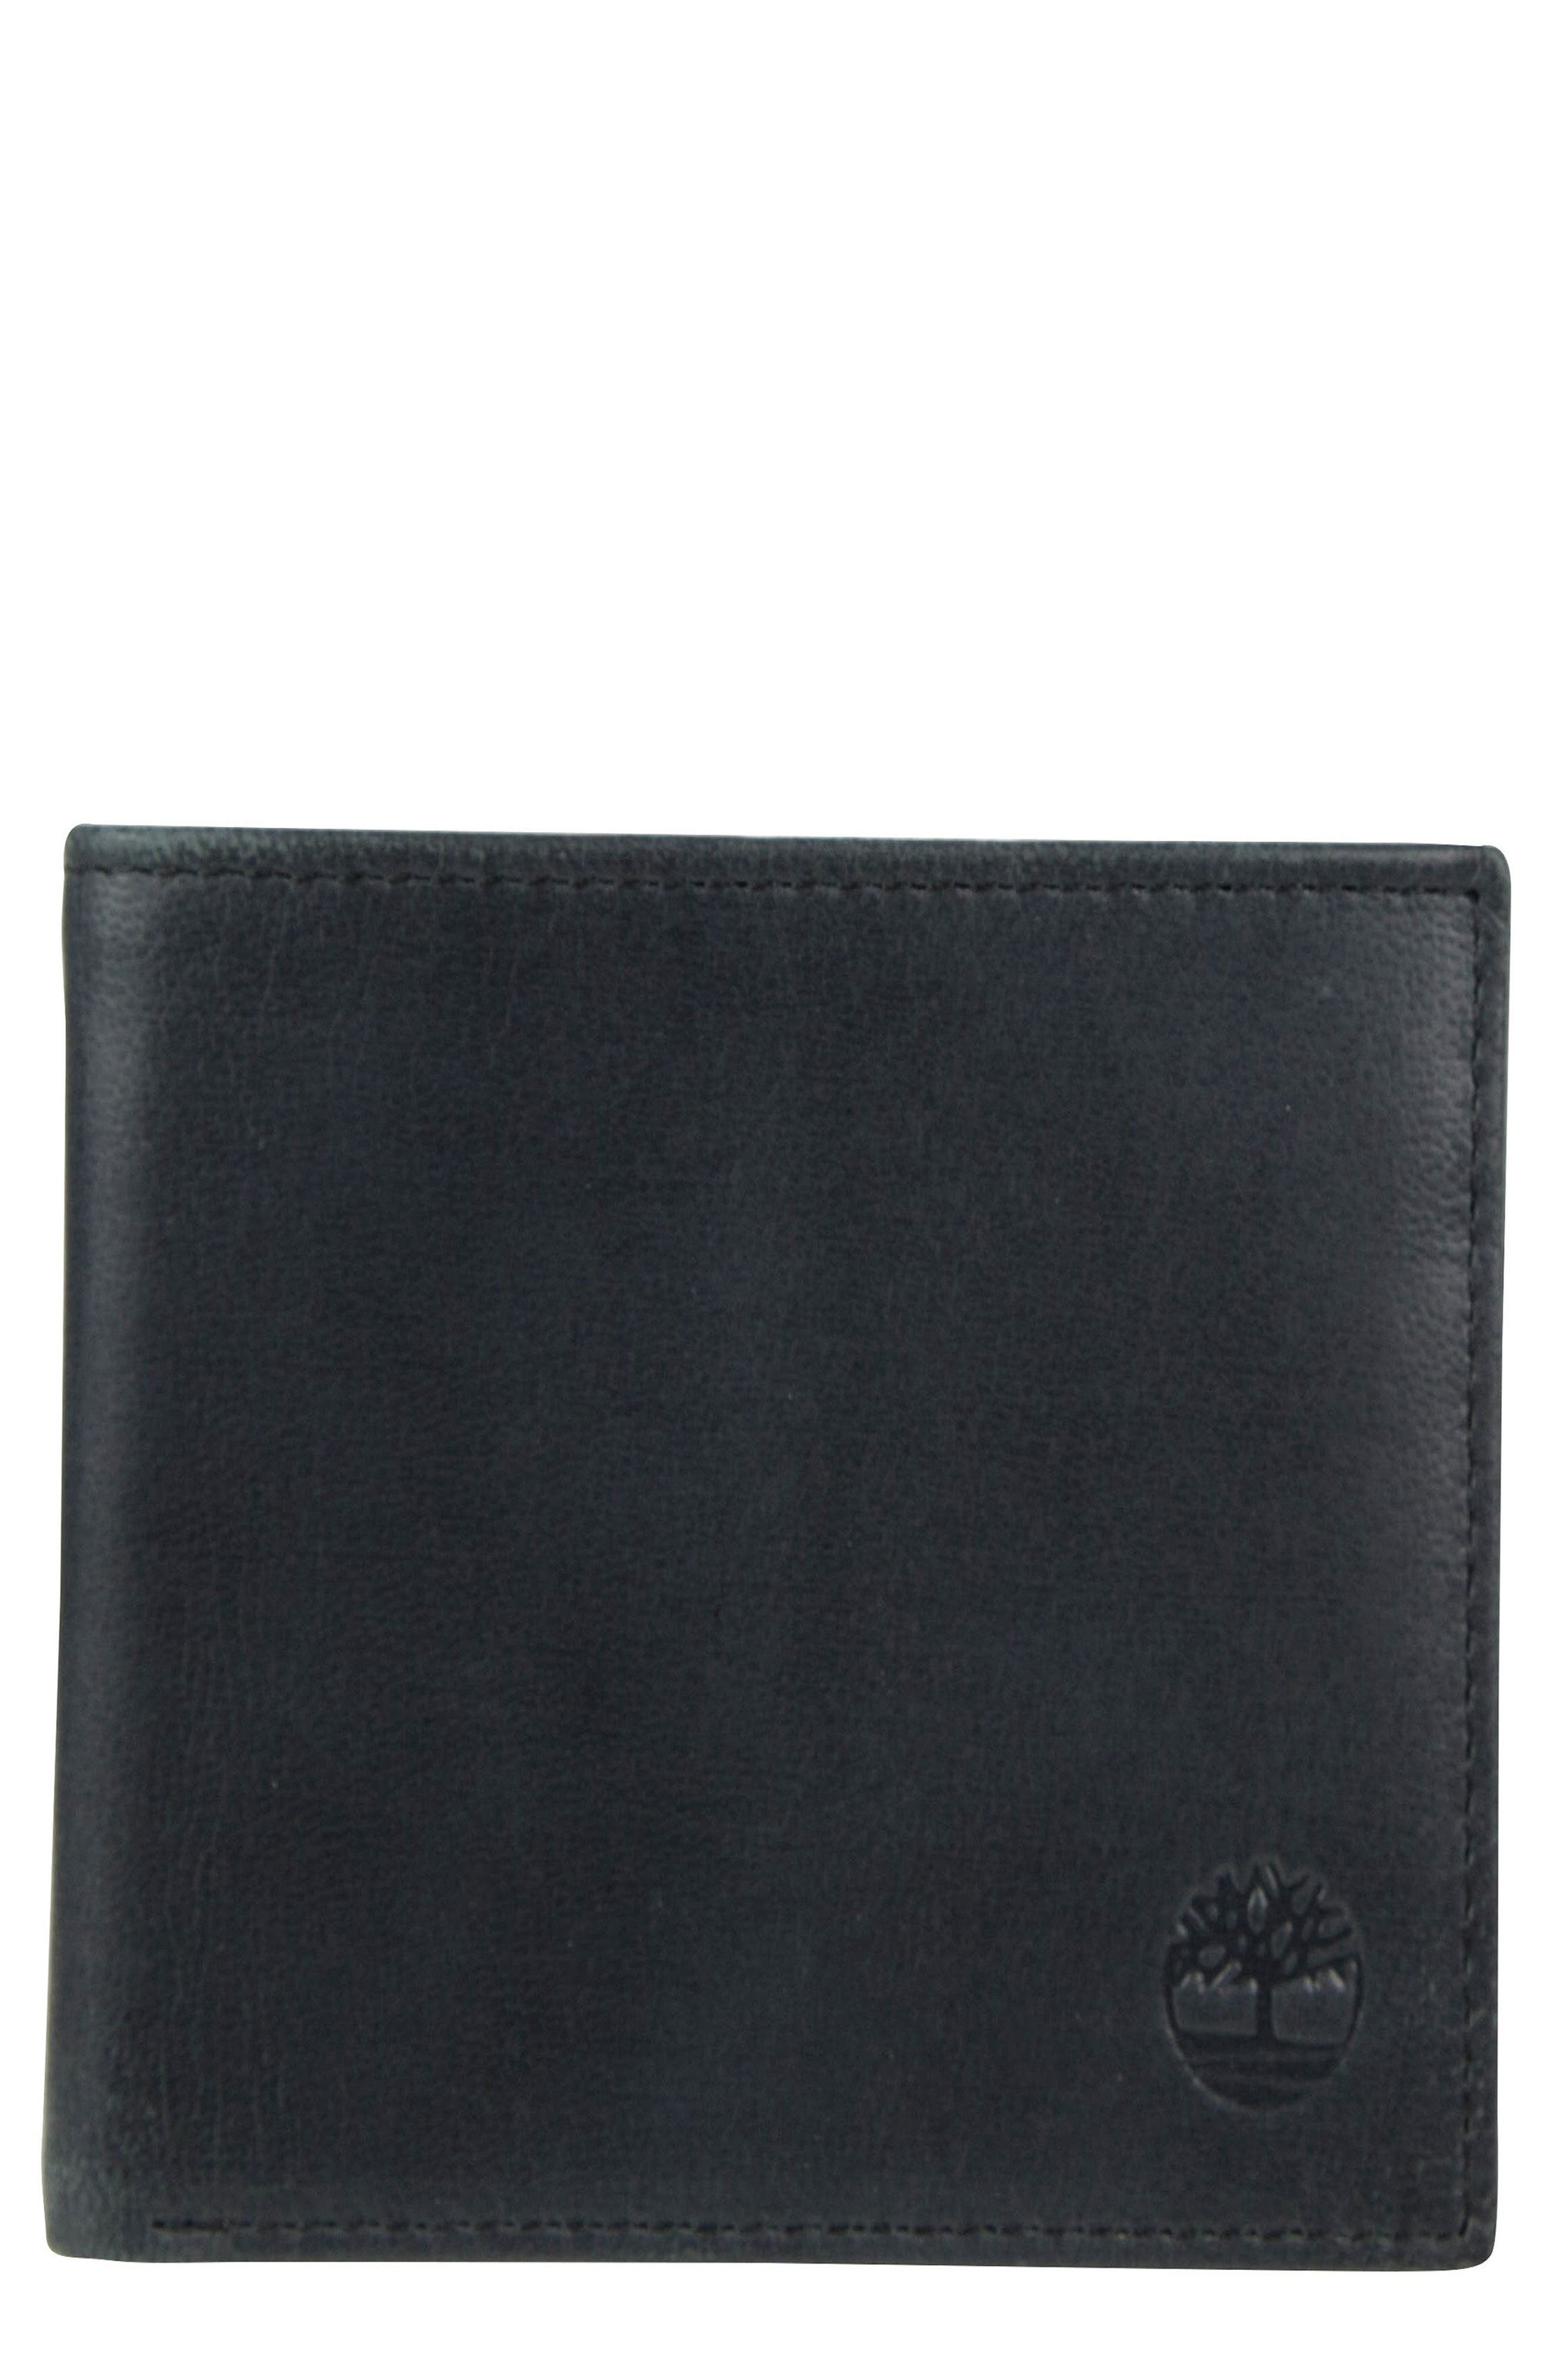 Cloudy Leather Wallet,                         Main,                         color, Black